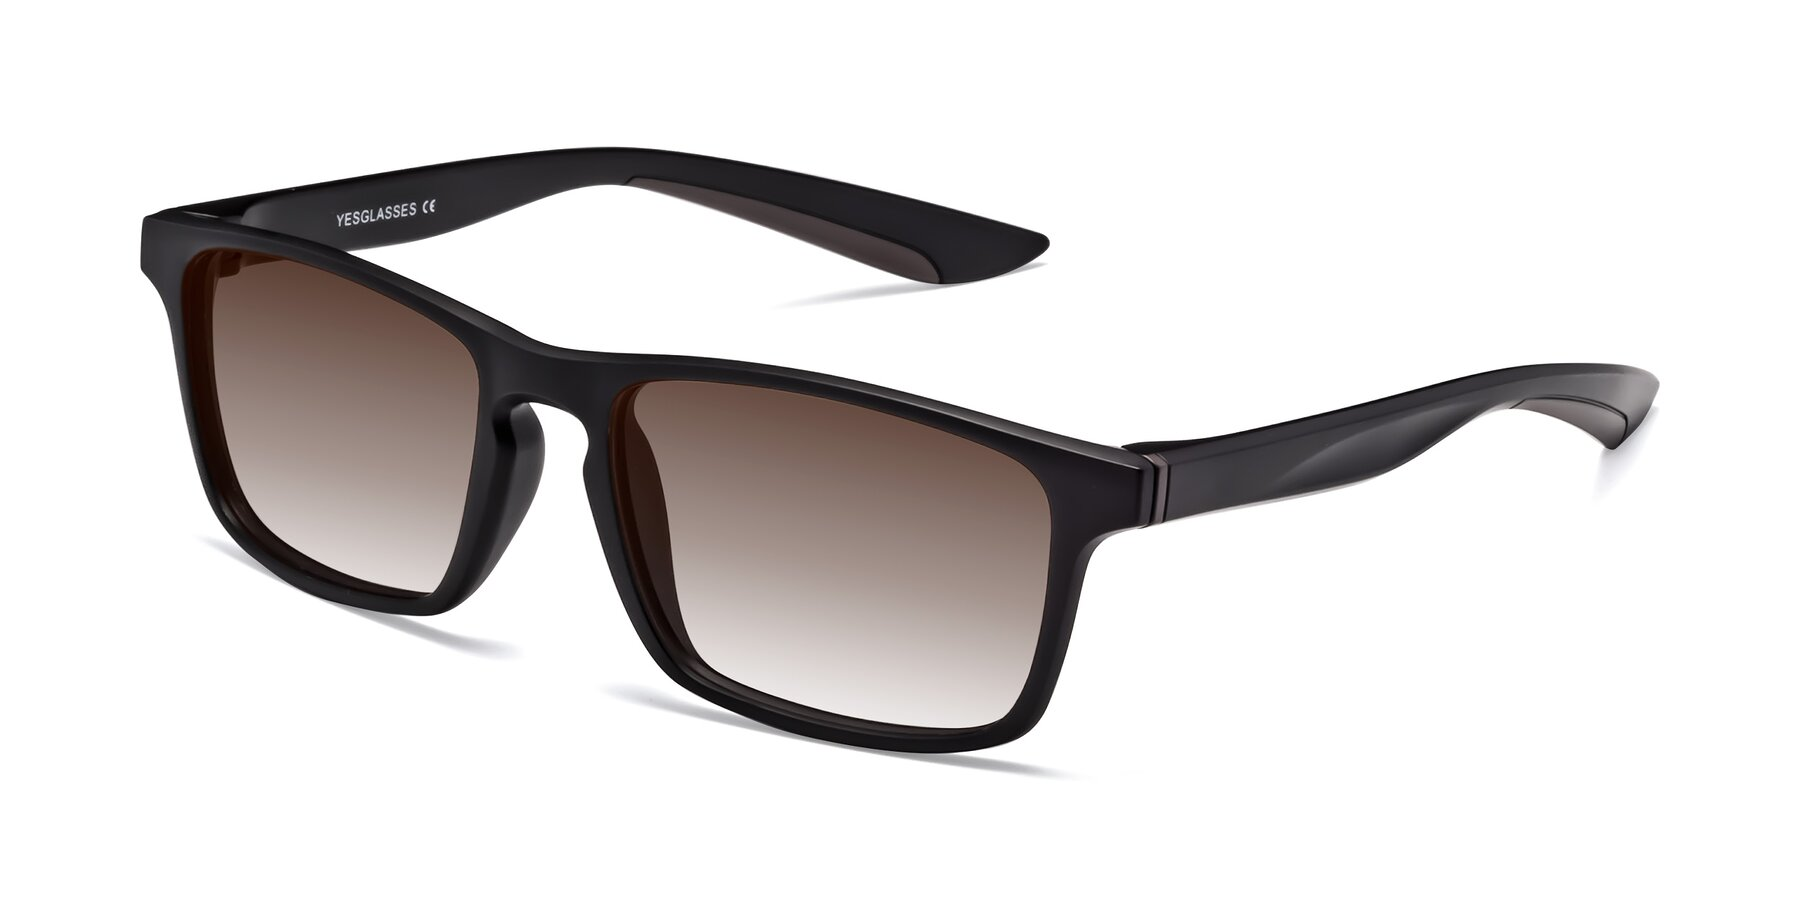 Angle of Passion in Matte Black-Coffee with Brown Gradient Lenses